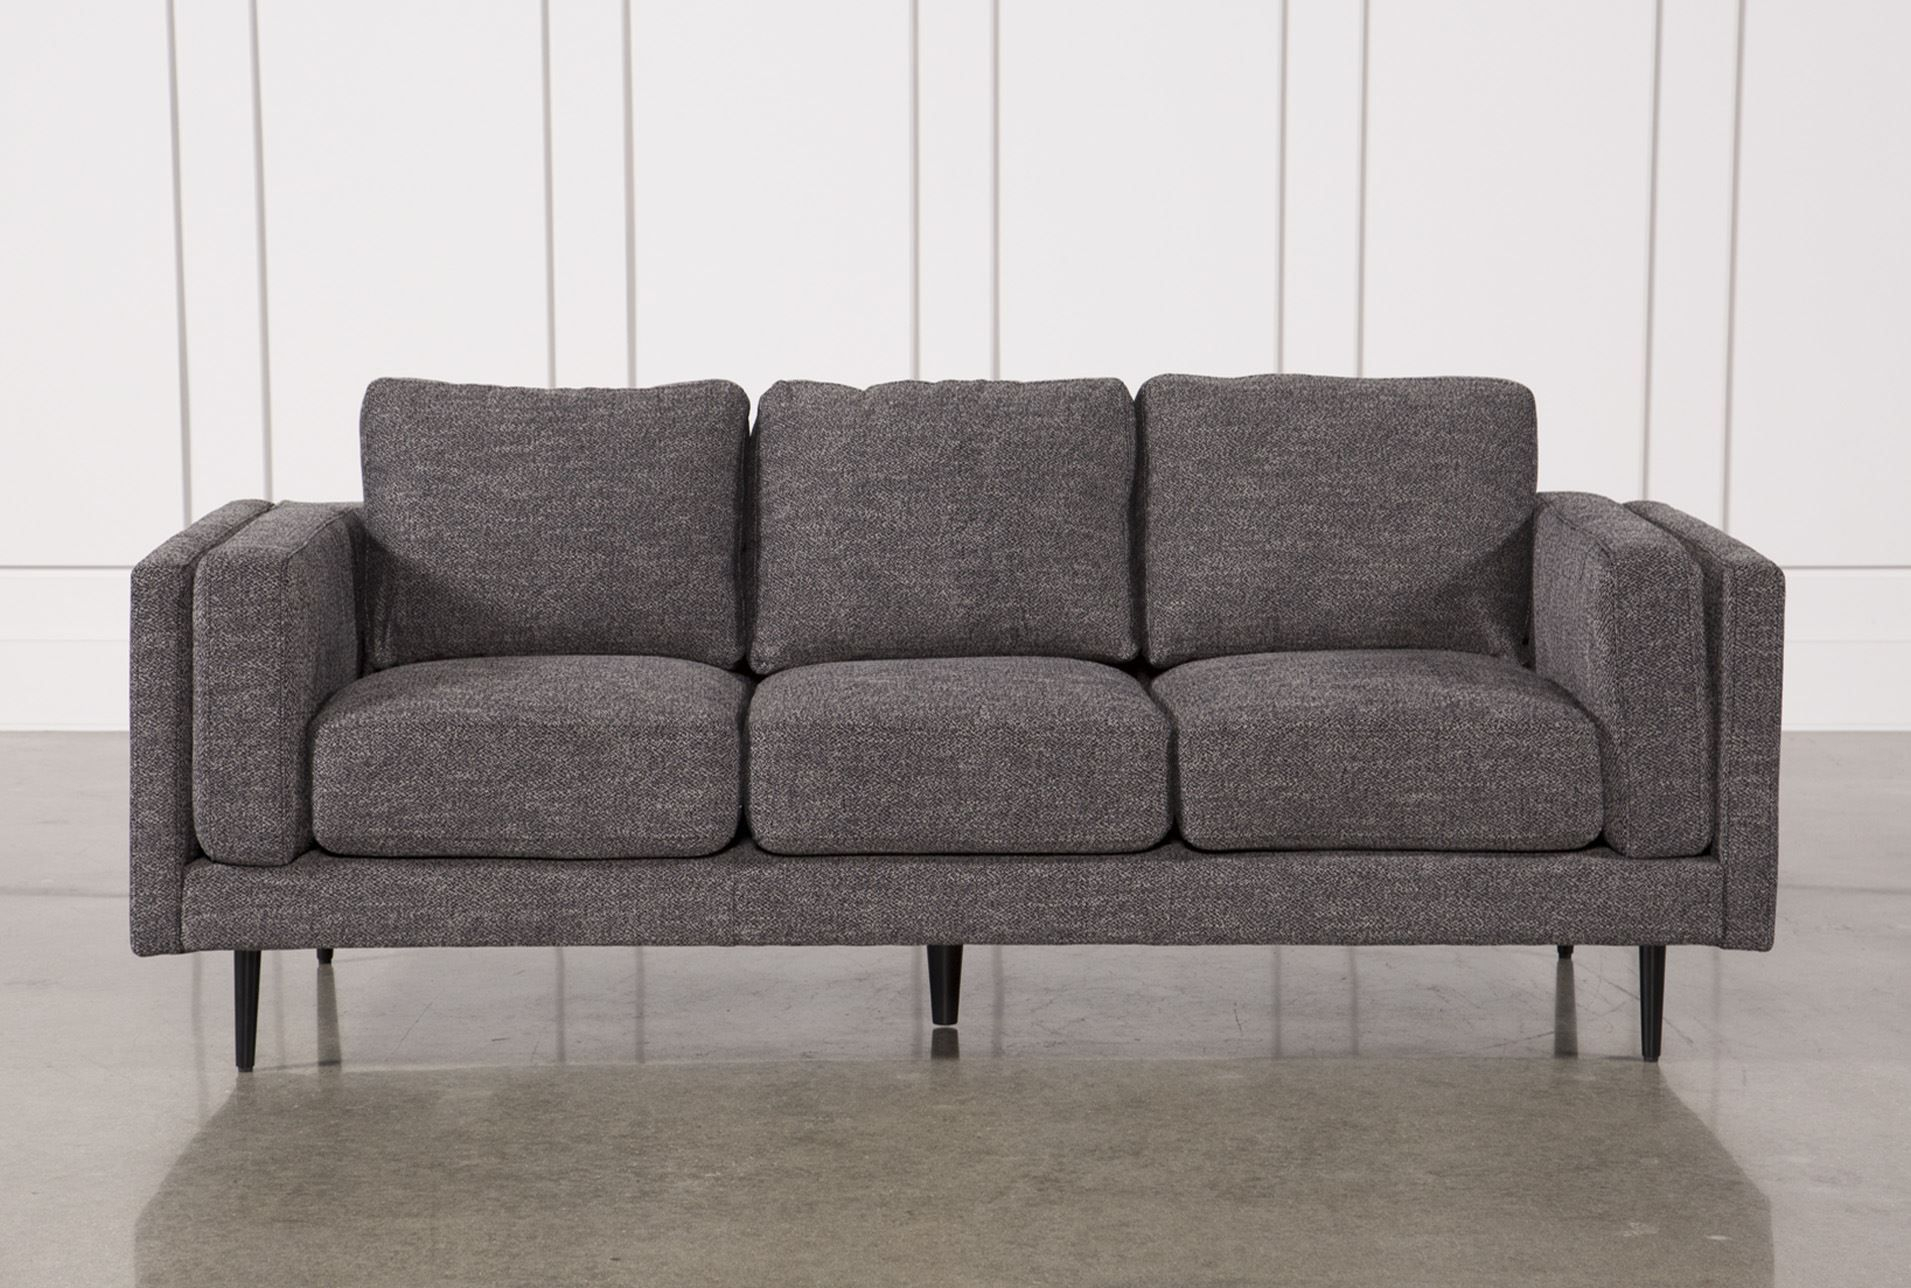 Aquarius Dark Grey Sofa | Micali House | Pinterest | Aquarius, Dark With Aquarius Dark Grey Sofa Chairs (Image 5 of 25)